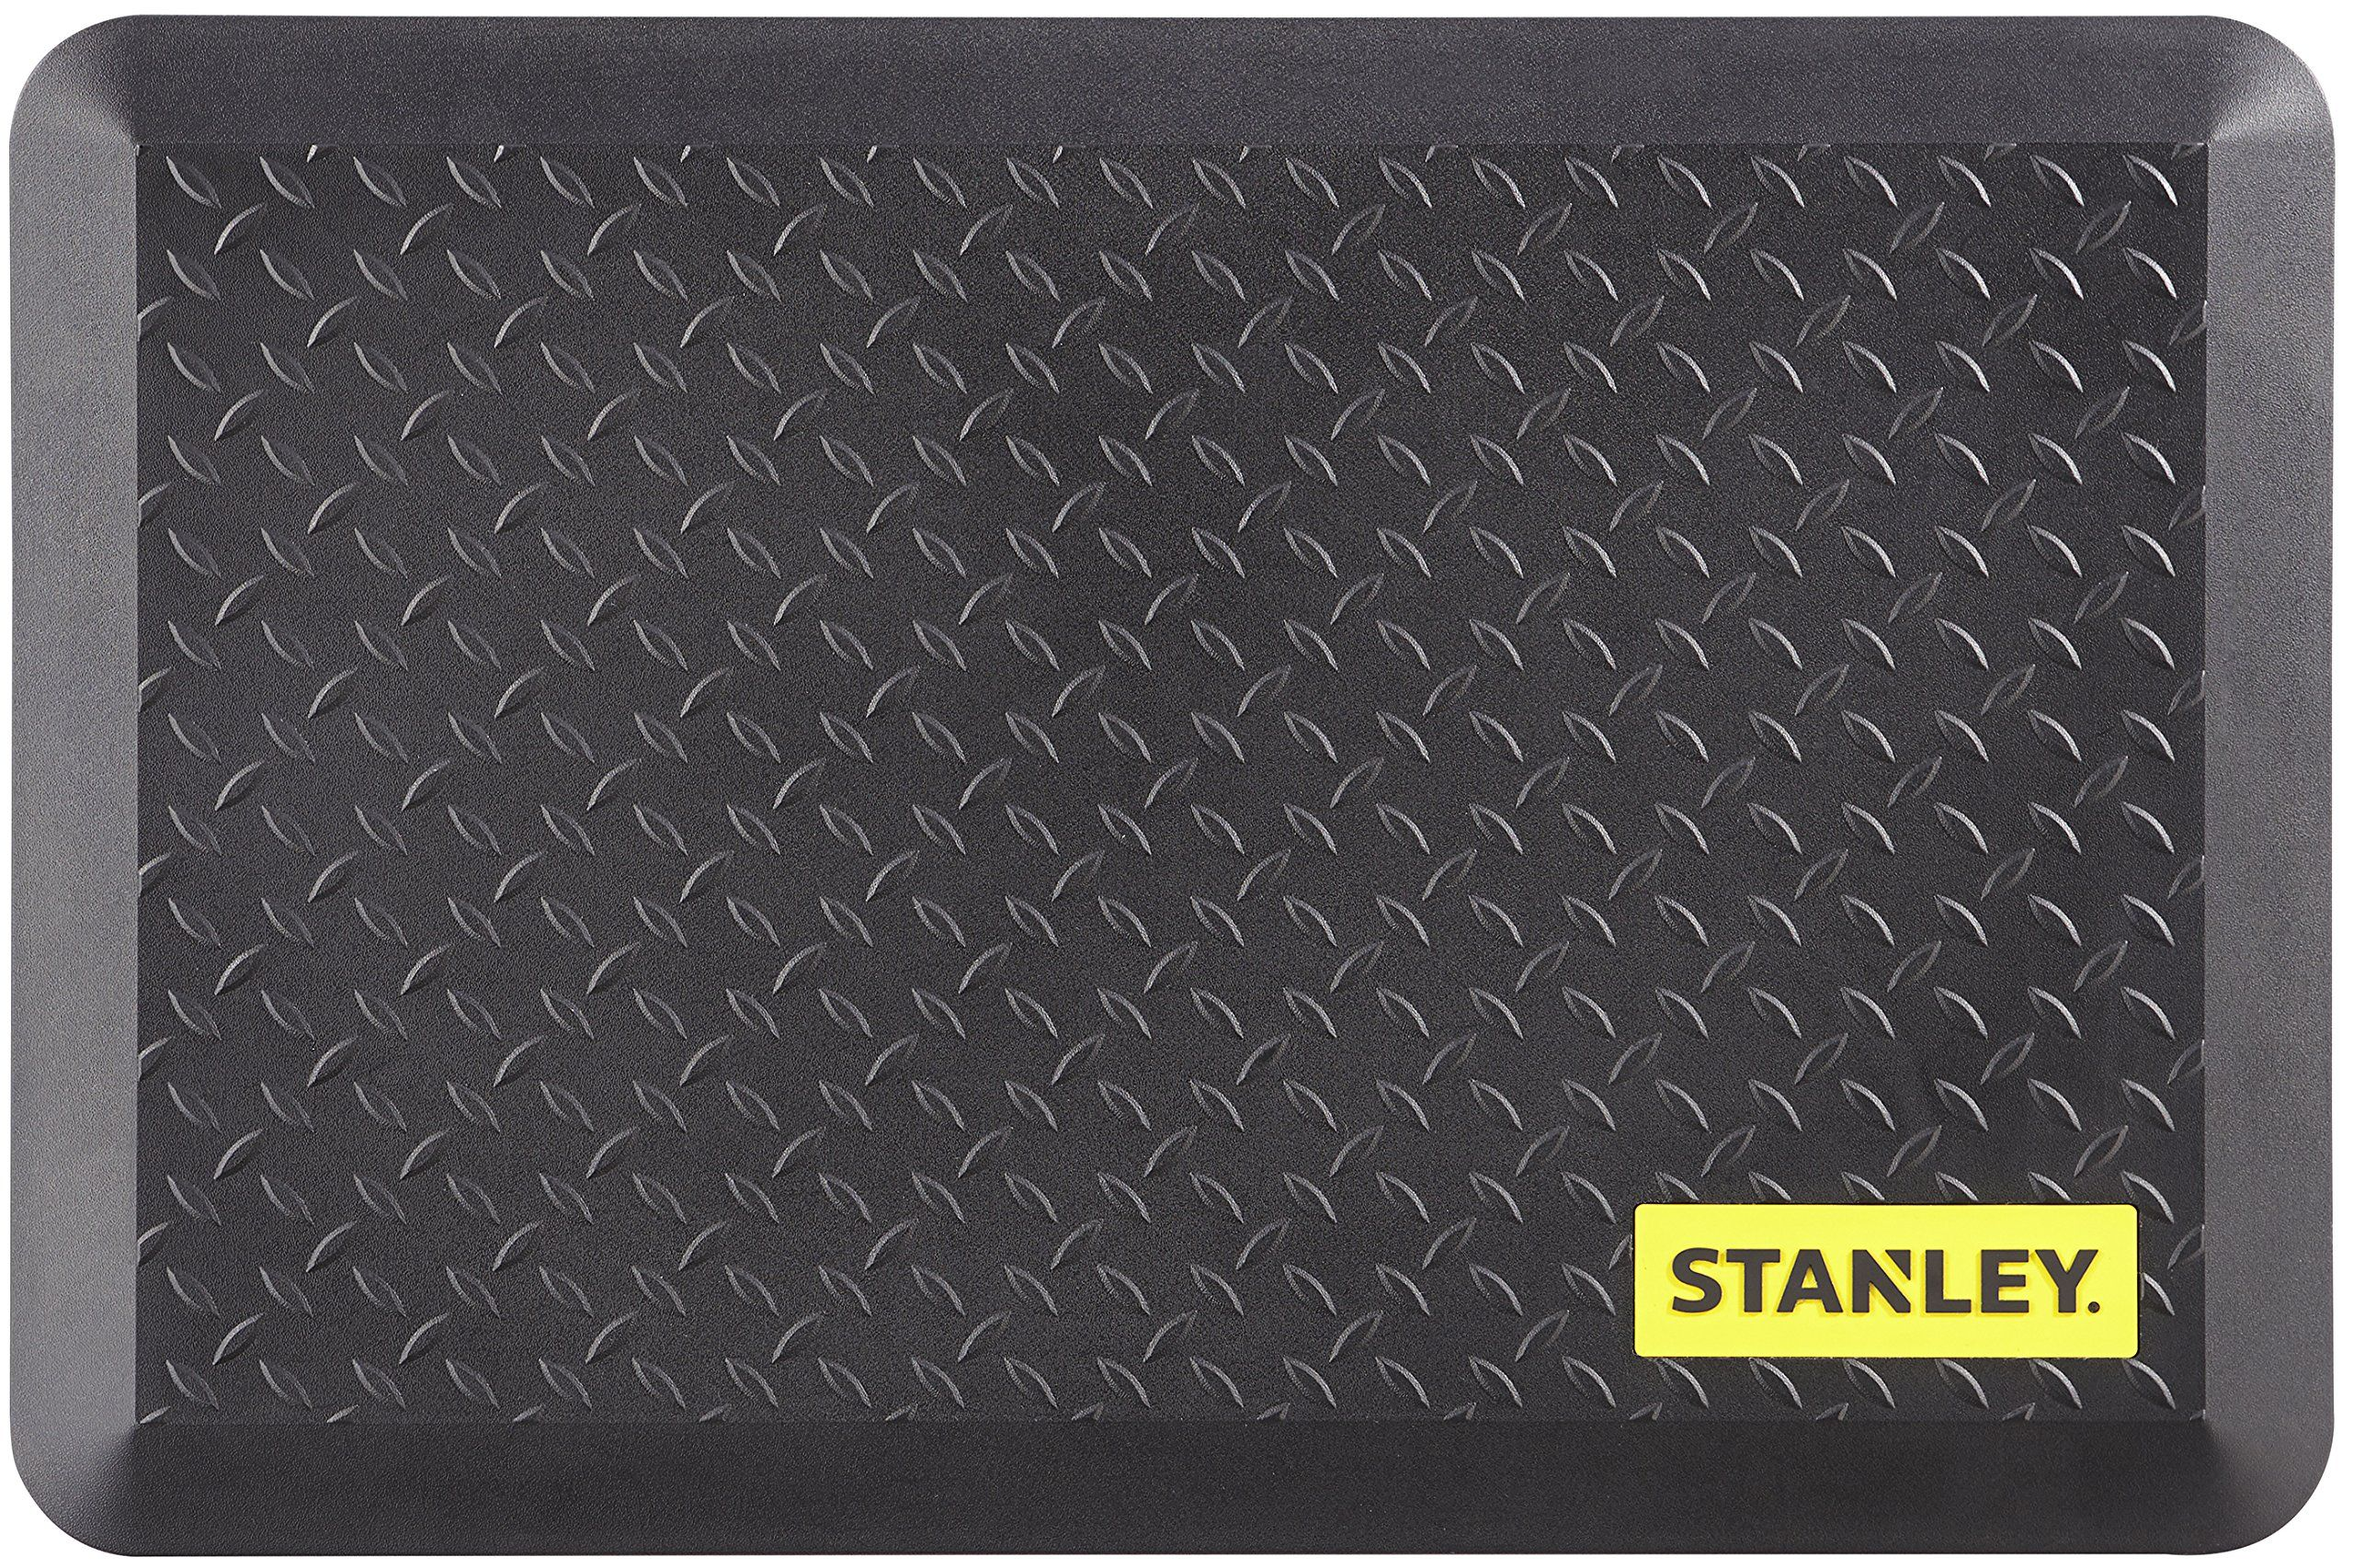 Stanley Utility Mat, 24-Inch Long x 36-Inch Wide